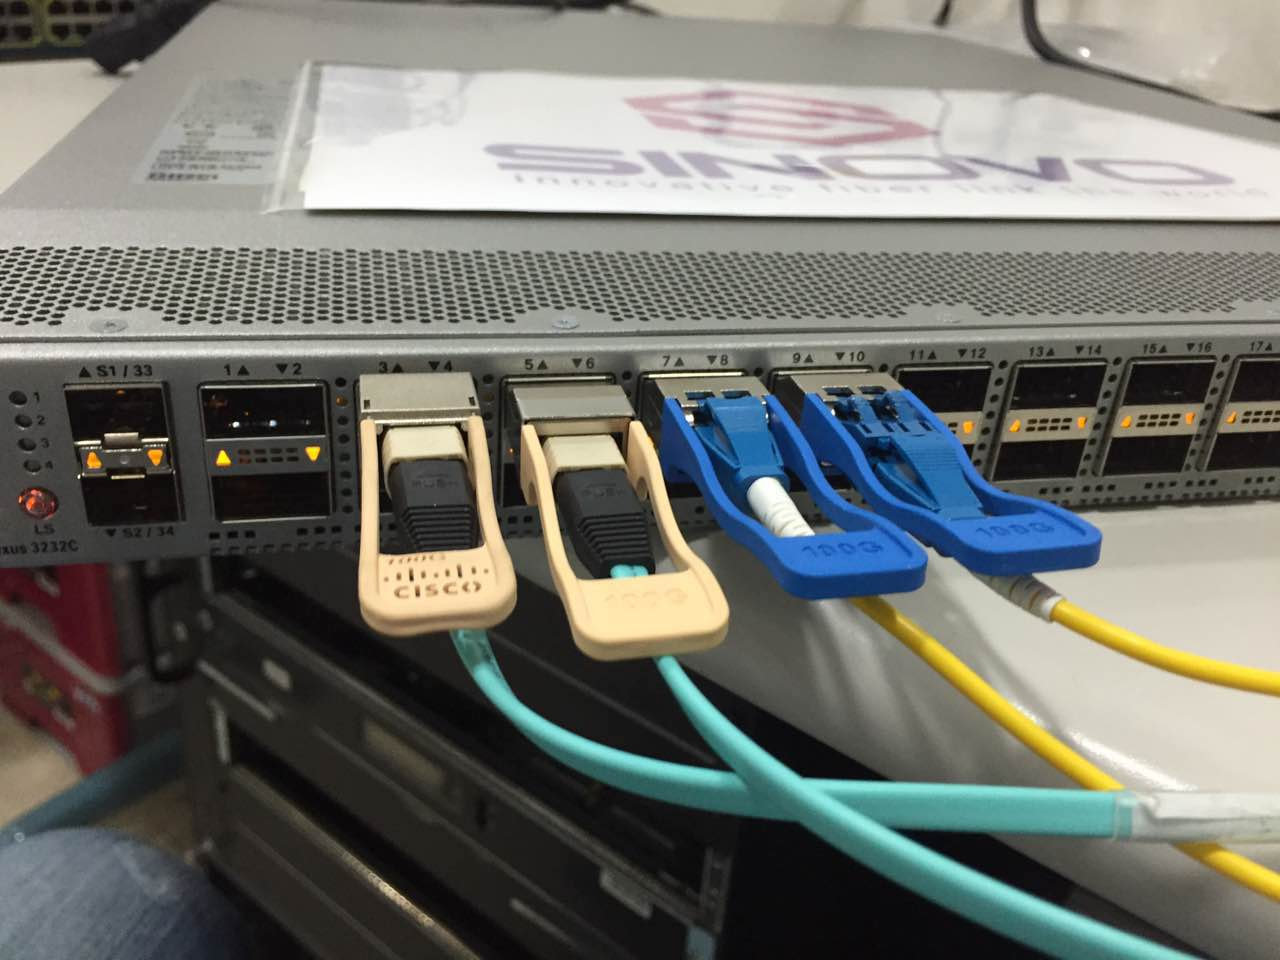 Sinovo 100G QSFP28 SR/LR running peferctly Cisco